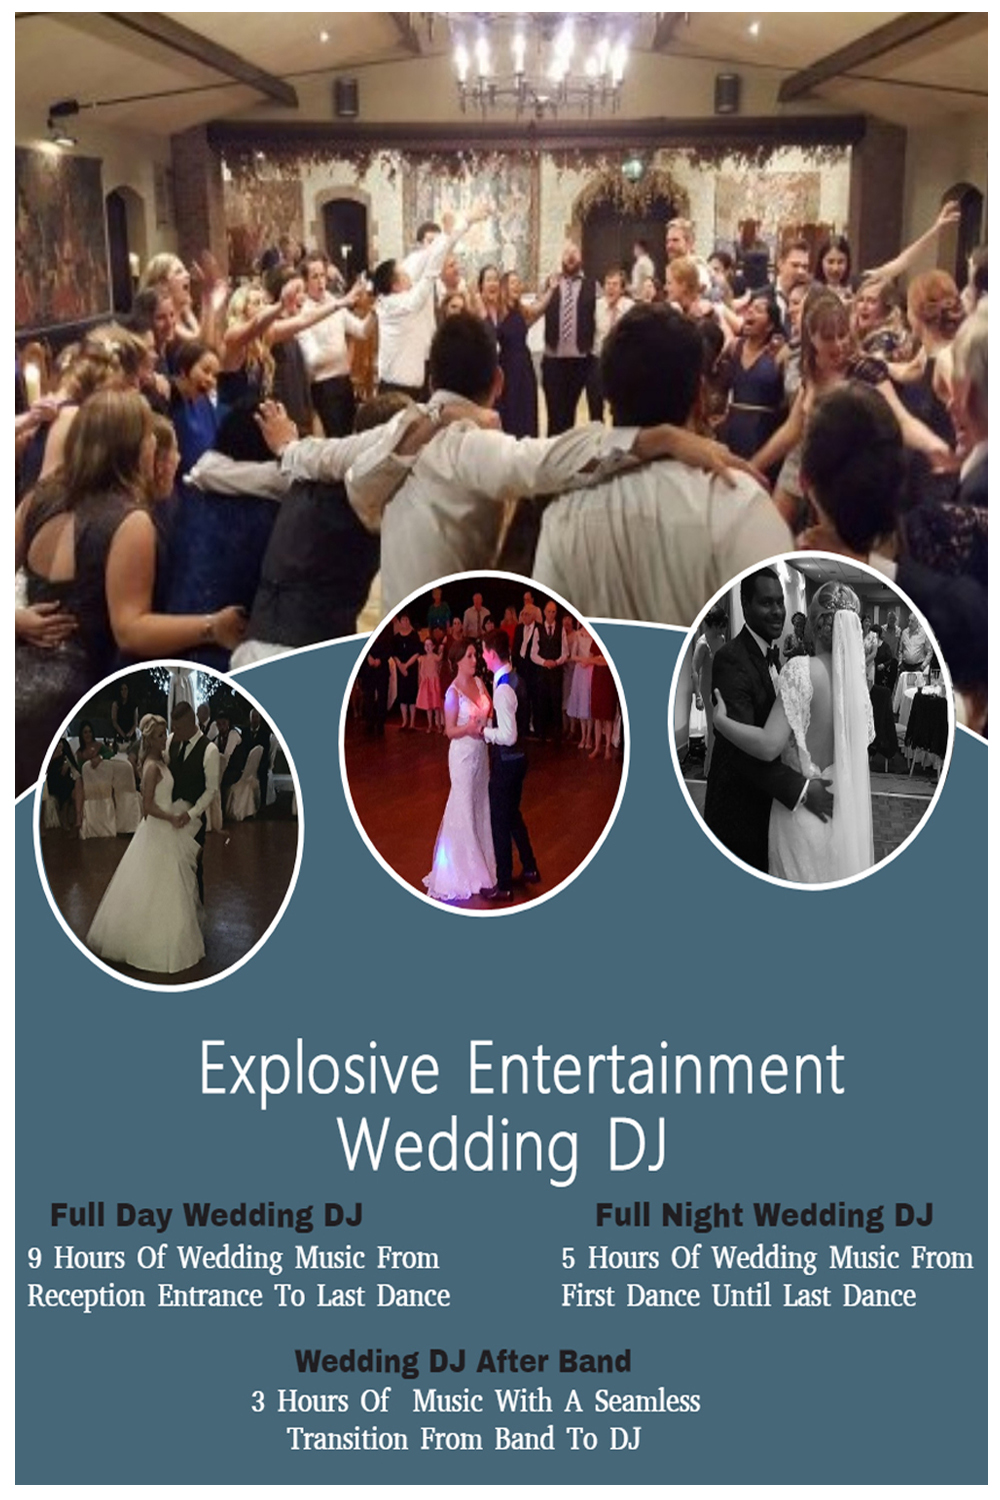 Wedding Dj Dj Wedding Dj Hirewedding Entertainment